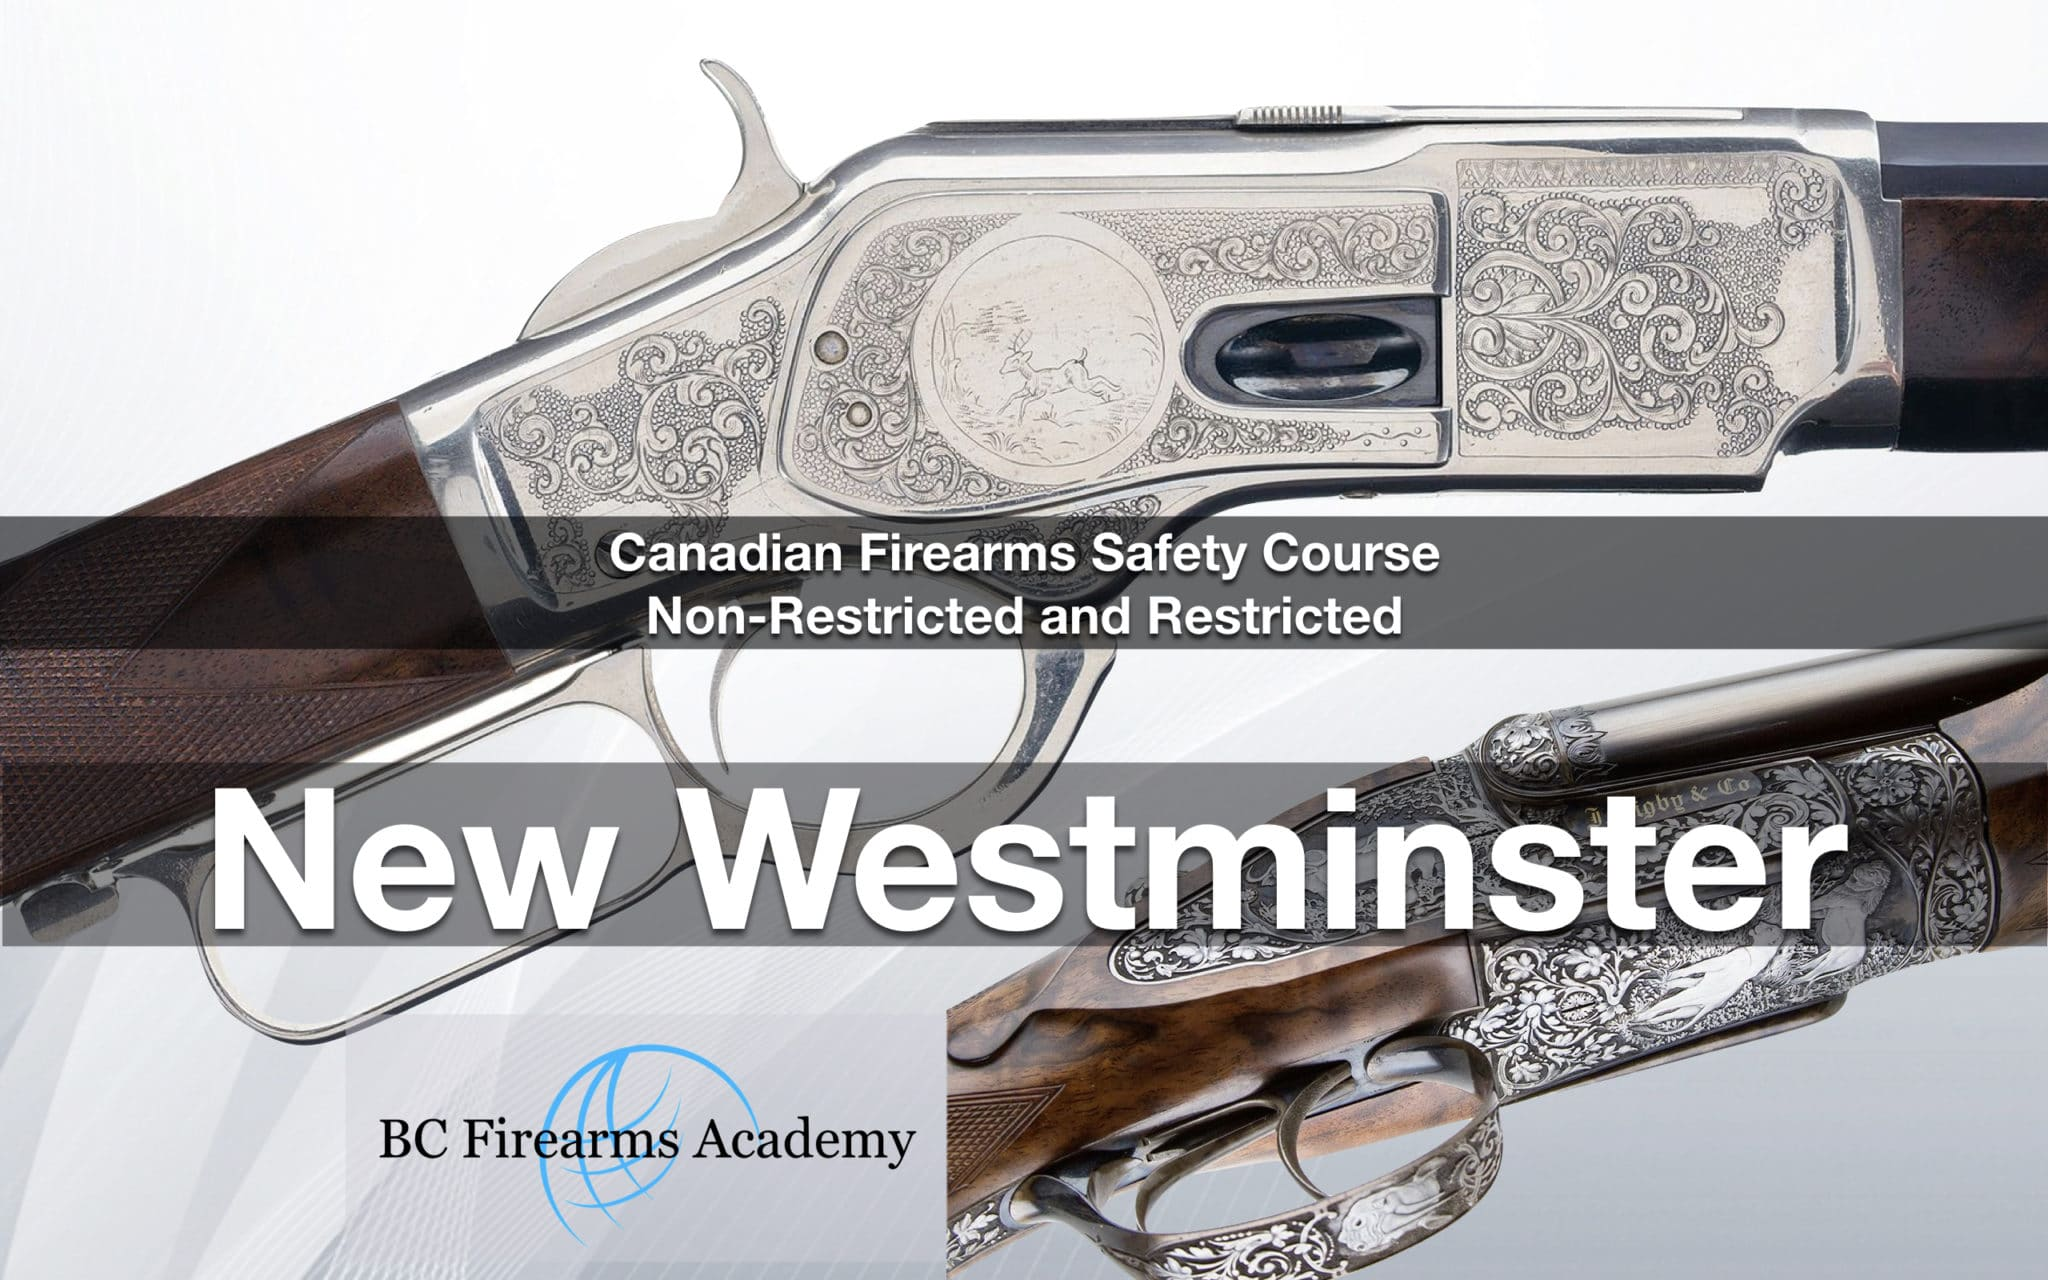 New Westminster Vancouver BC Firearms Academy JIBC PAL Course